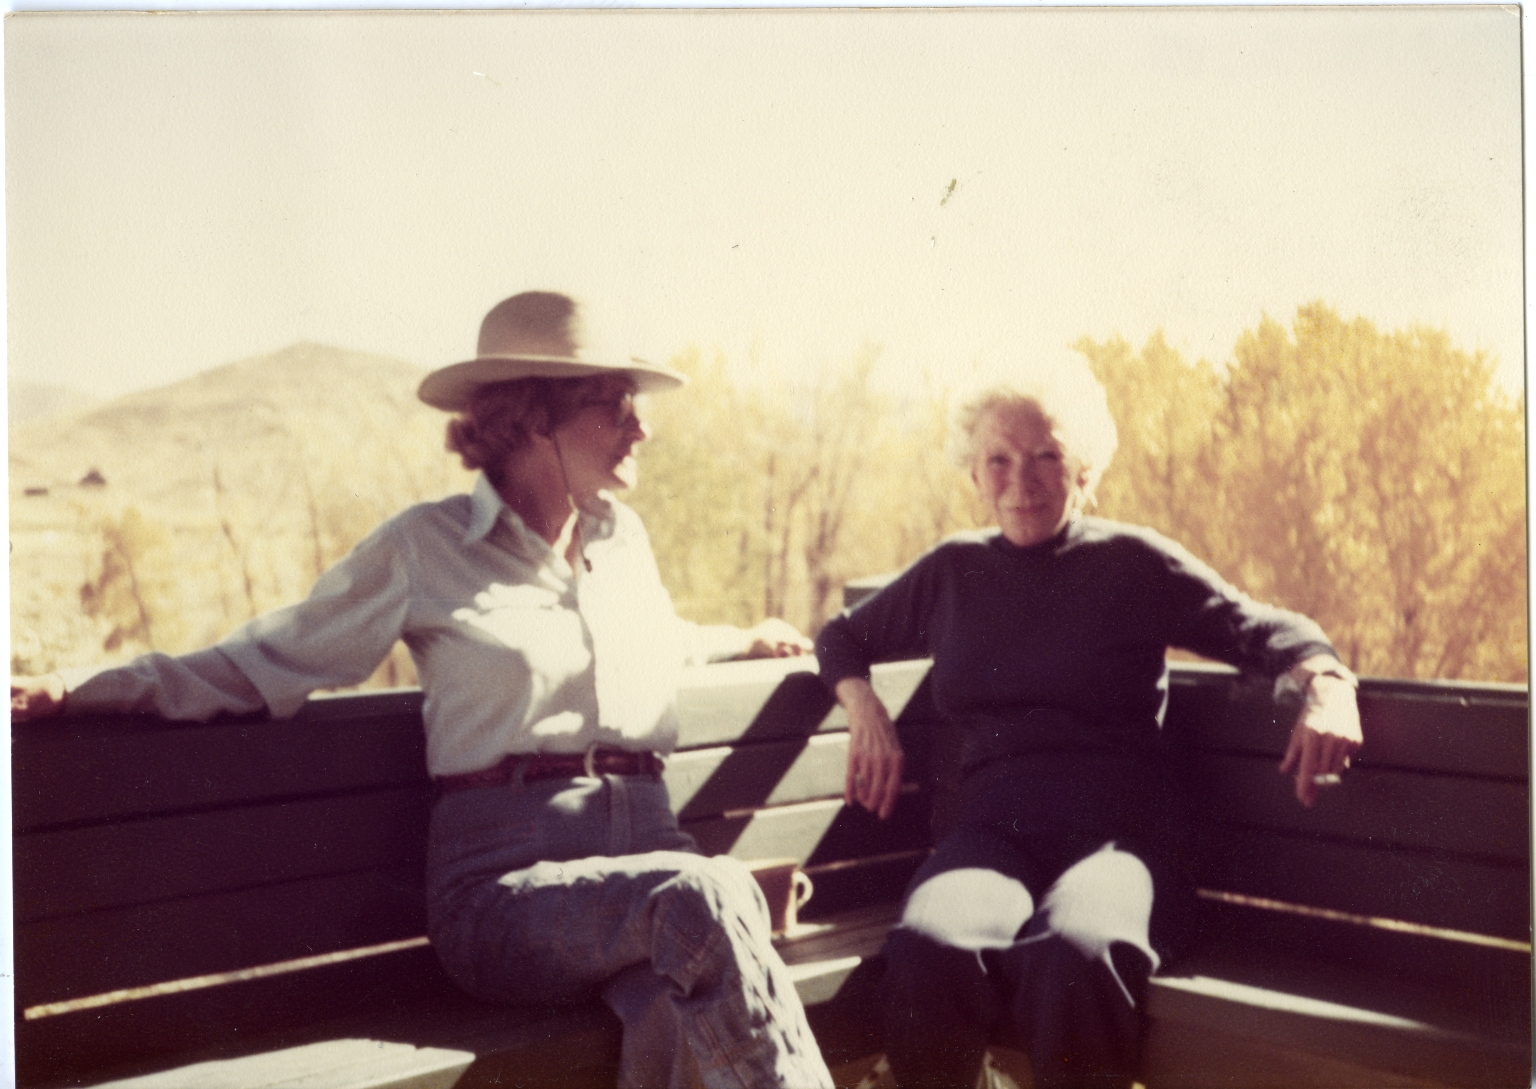 Mary Hemingway Seated Outside in Ketchum